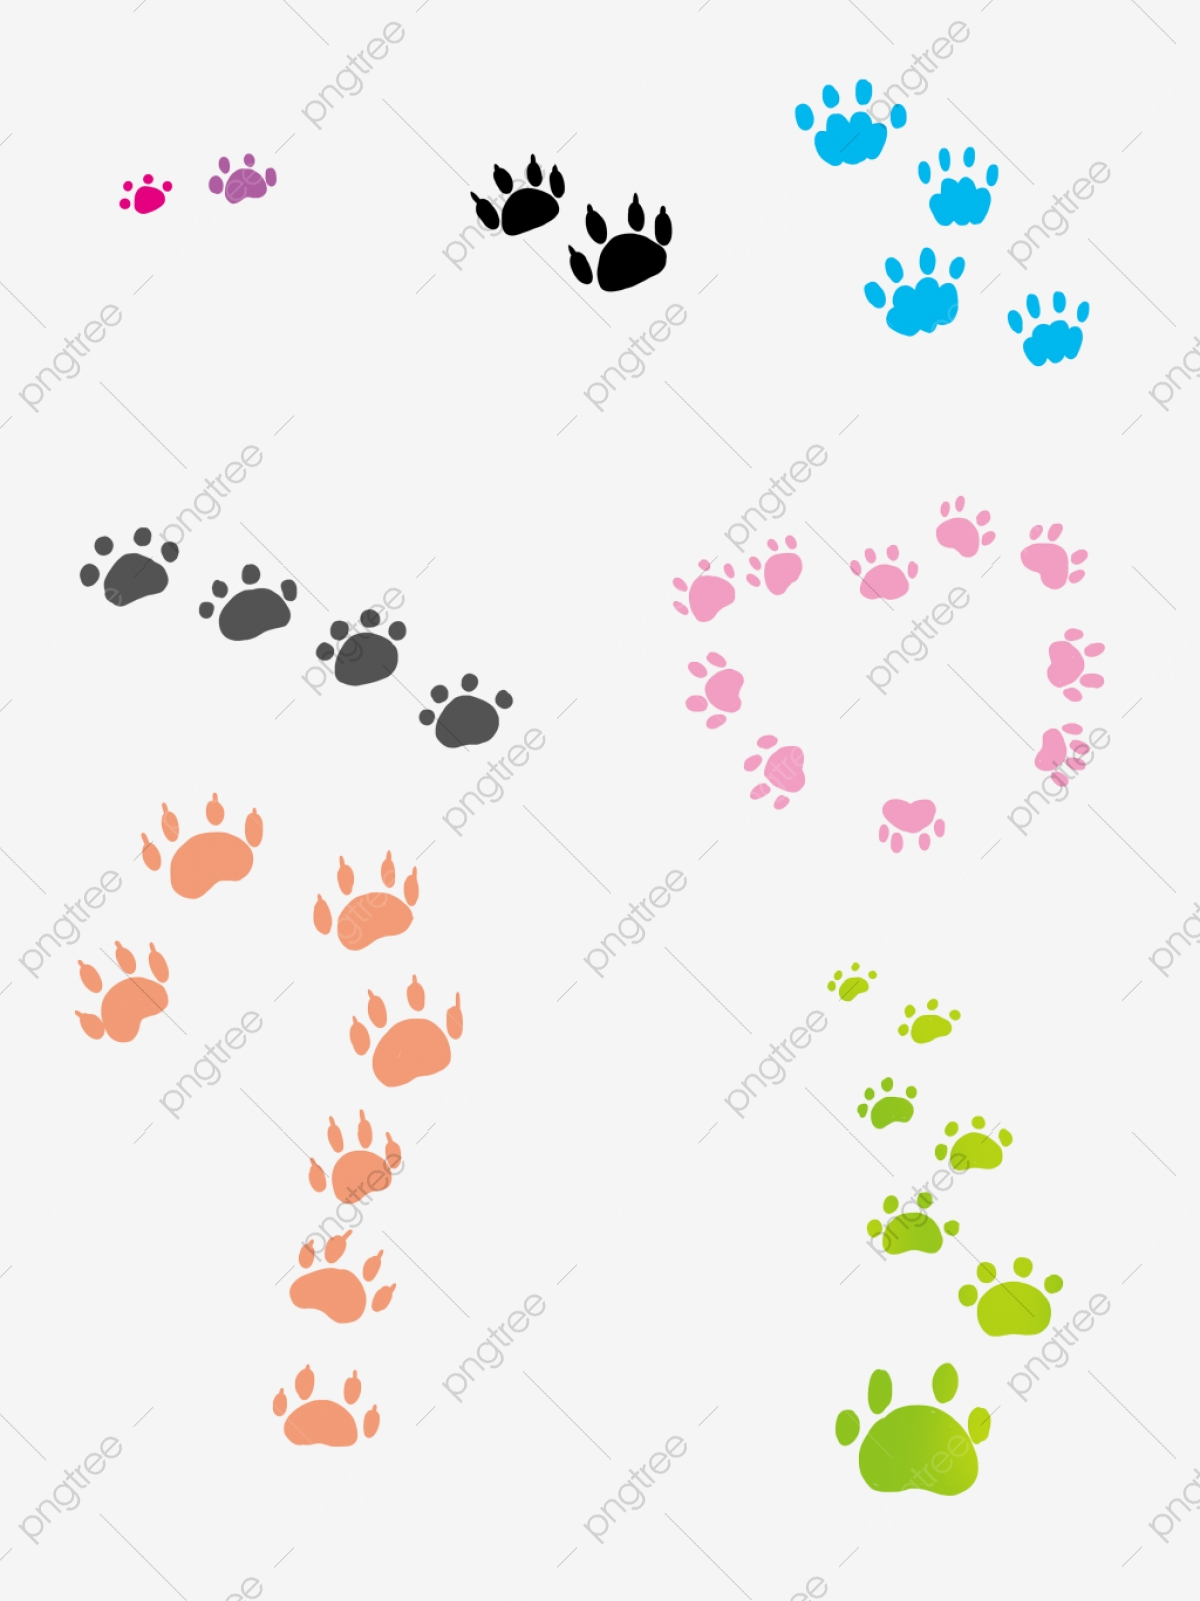 Color Cat Paw Prints Are Commercially Available Cat Paw Print Footprints Png Transparent Clipart Image And Psd File For Free Download